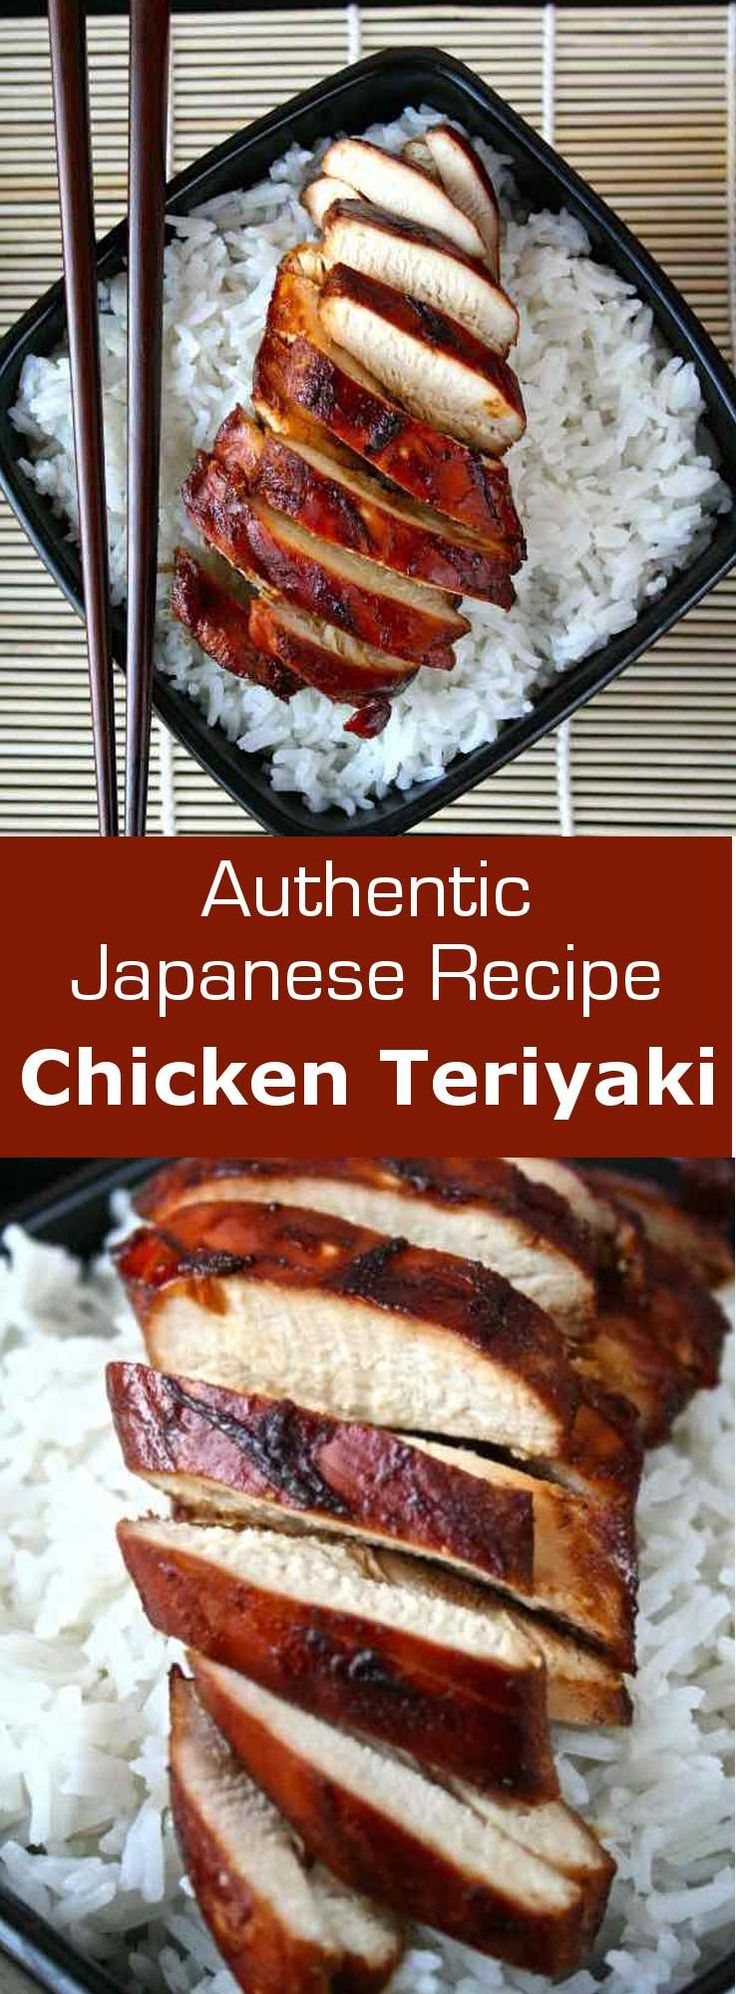 Chicken teriyaki consists in marinating and cooking chicken in teriyaki sauce…